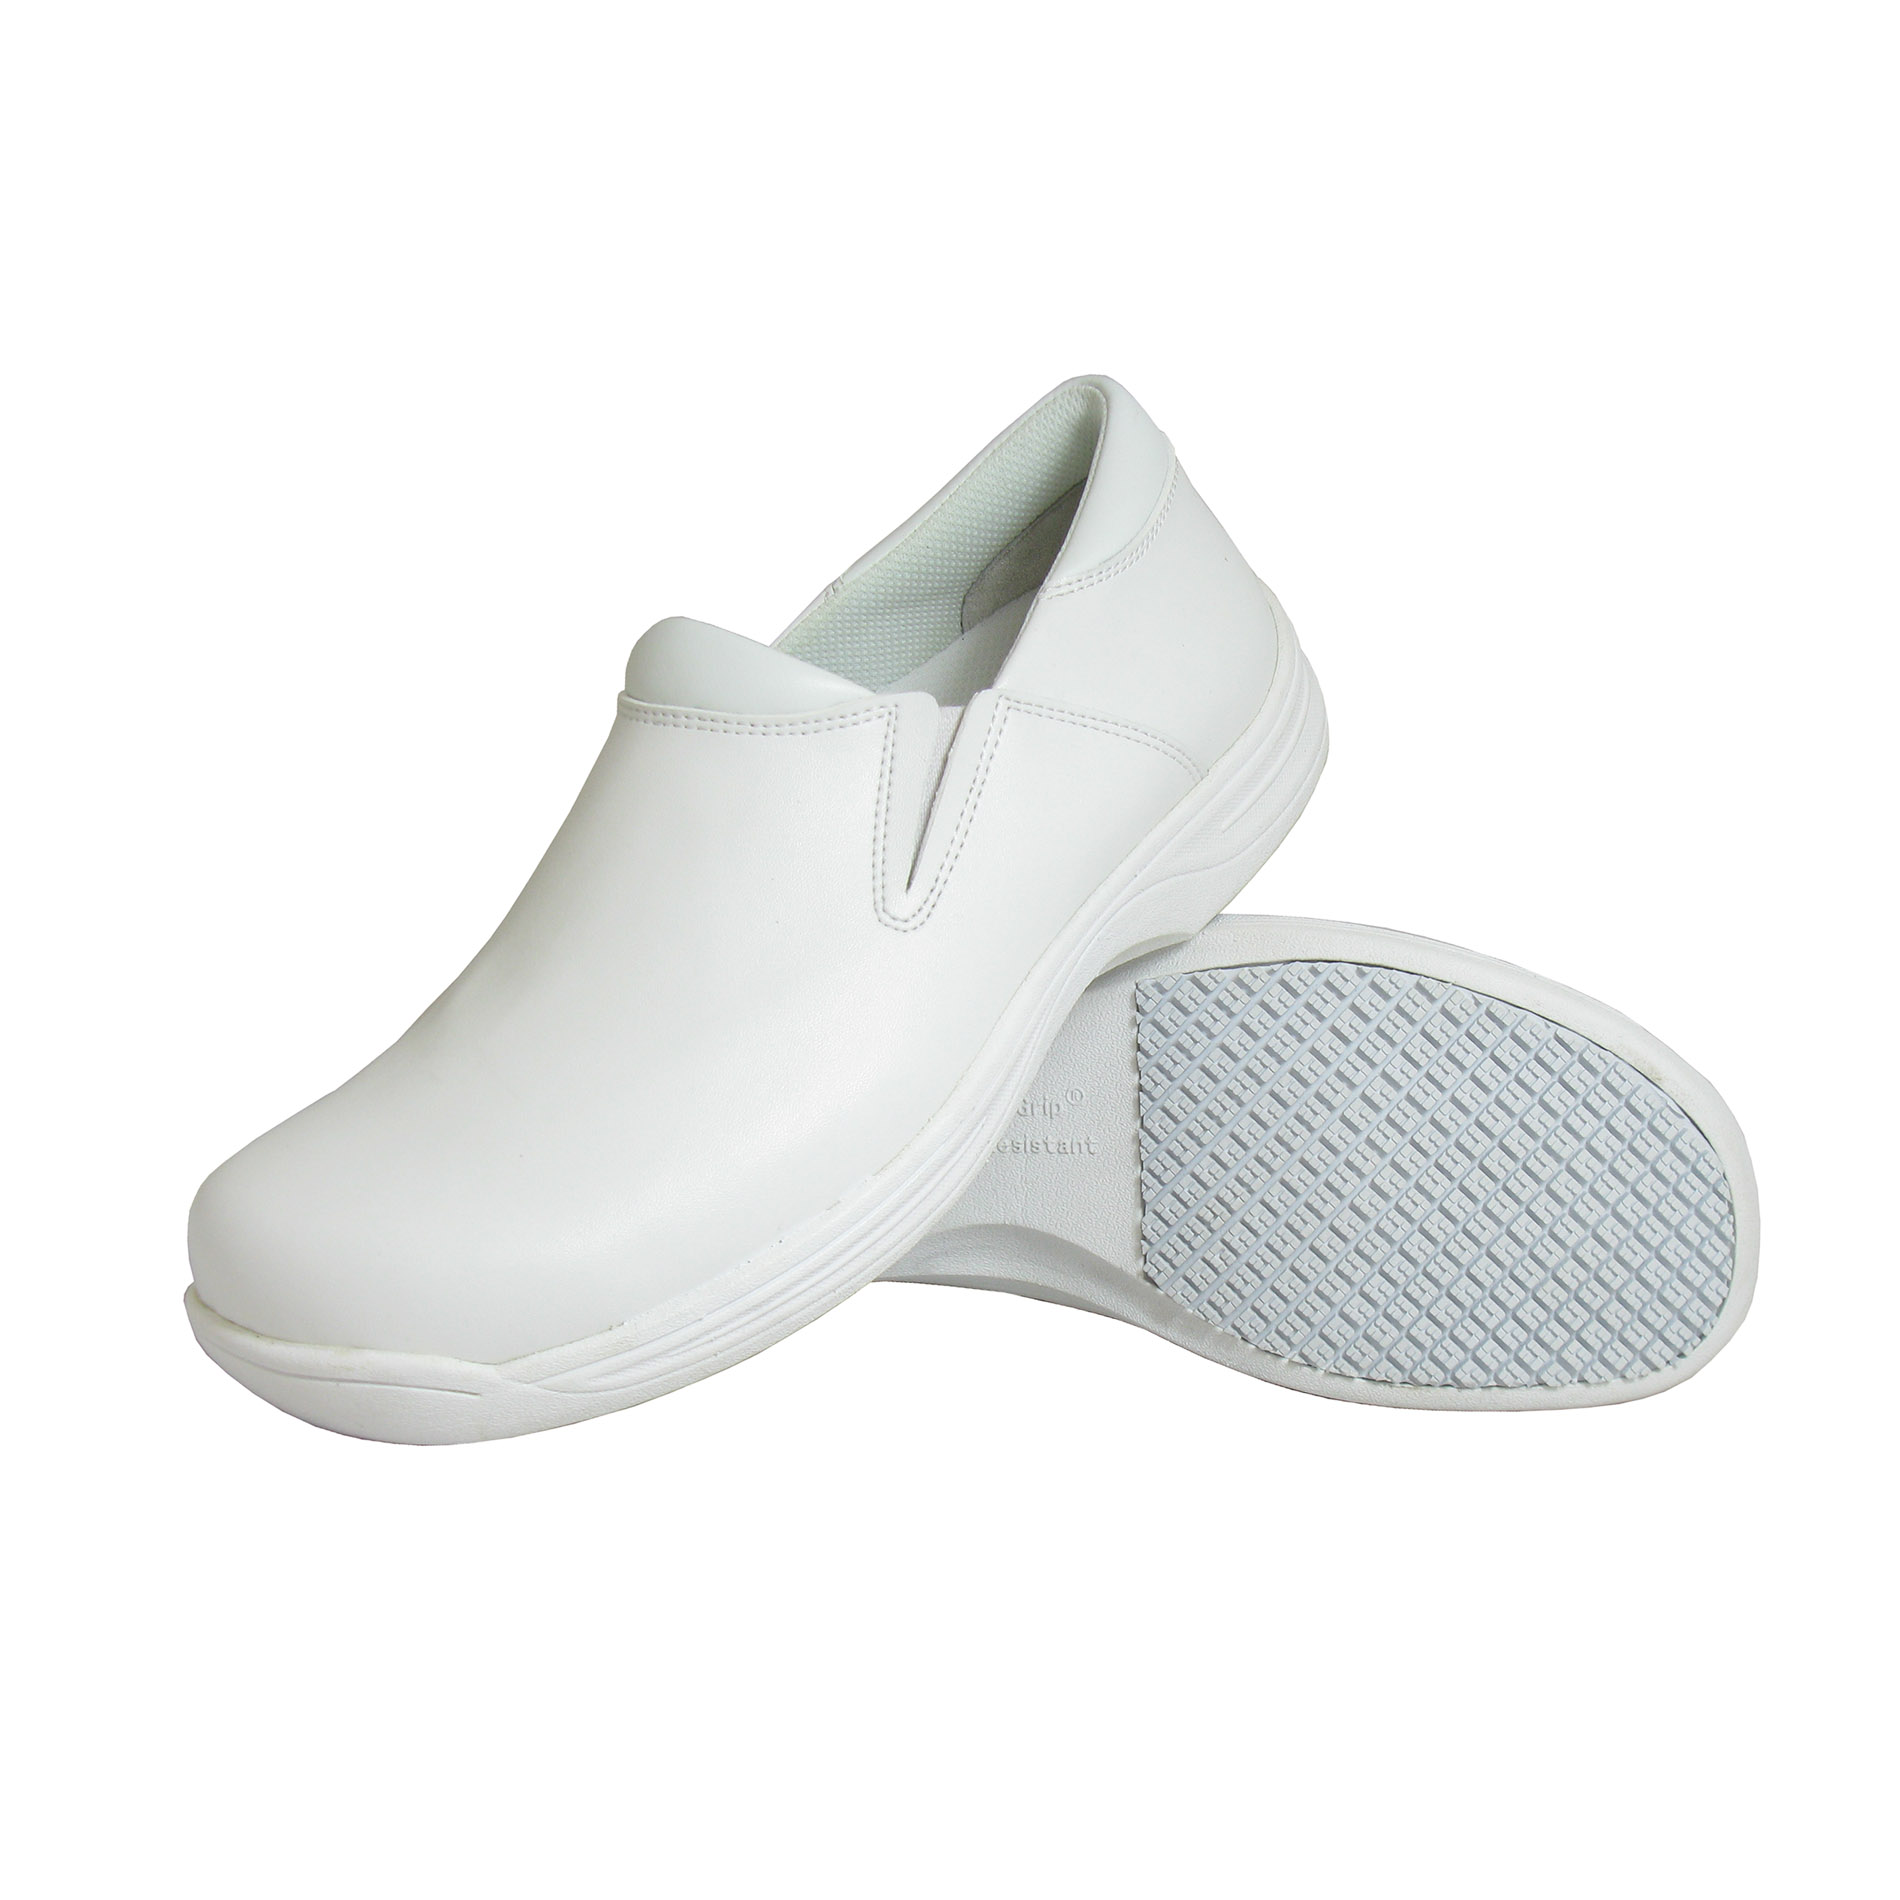 White Slip Resistant Work Shoes